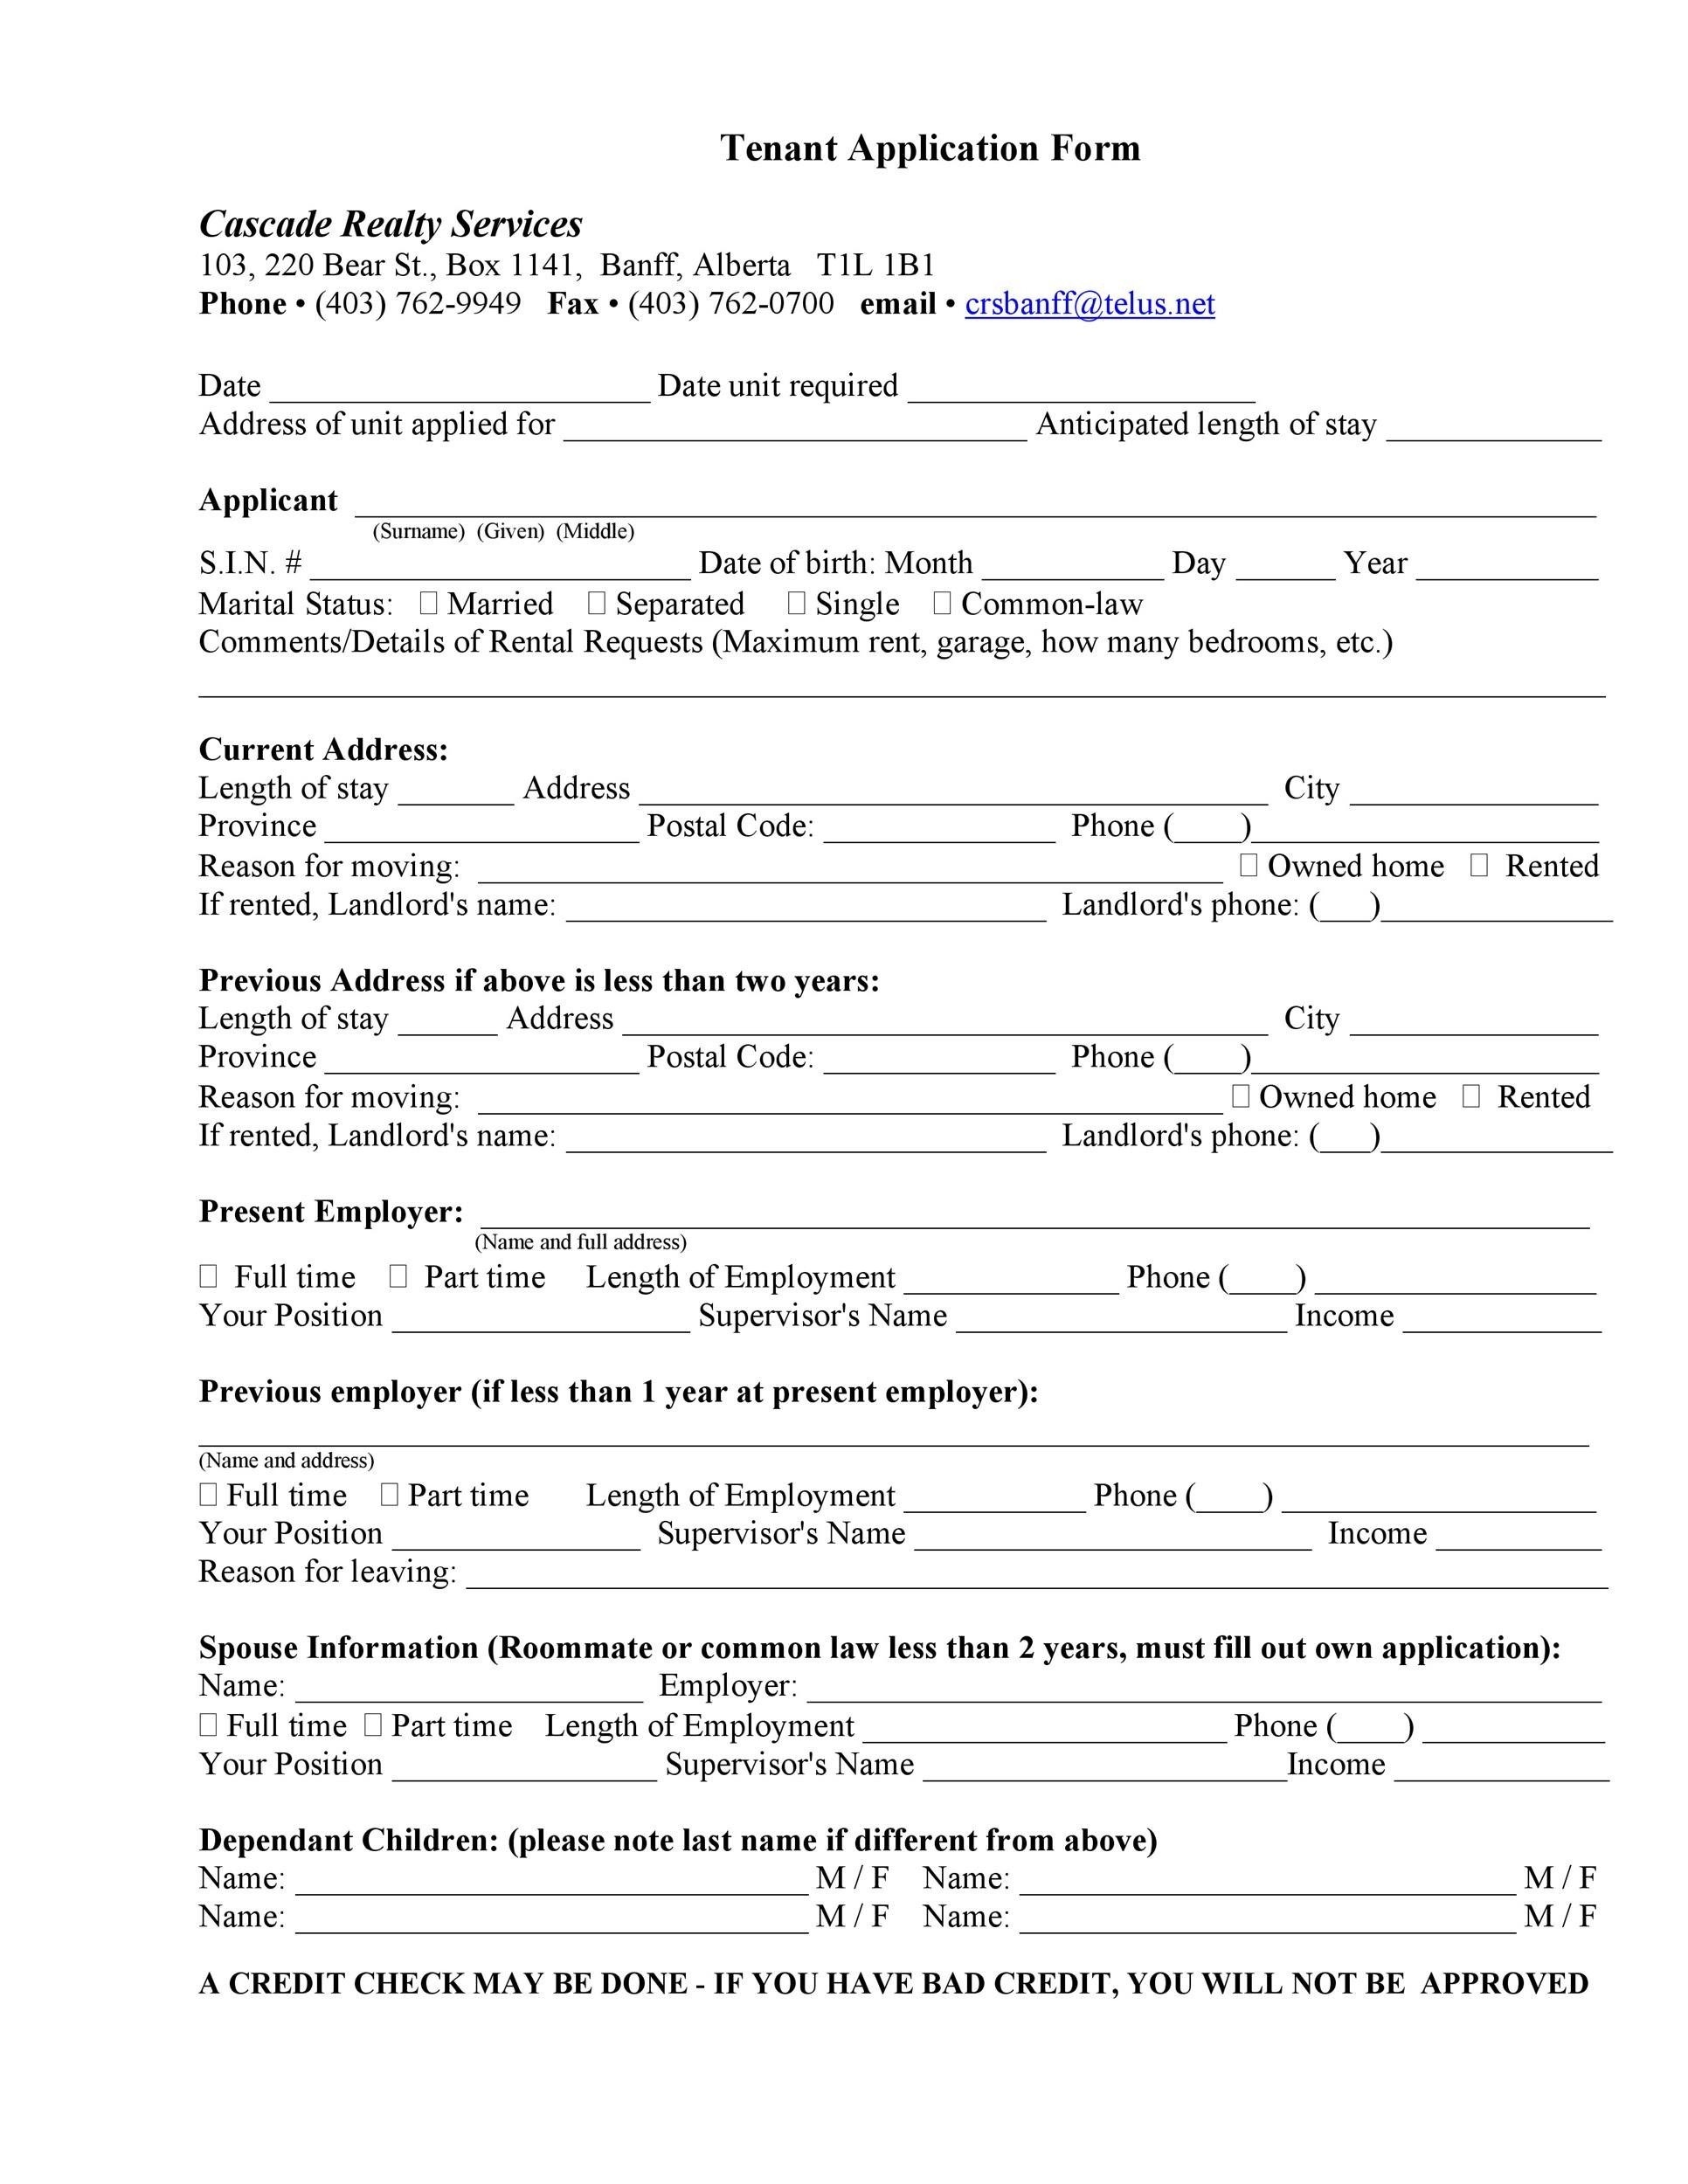 Lease Renewal Form. Lease Renewals And Extension Options – A